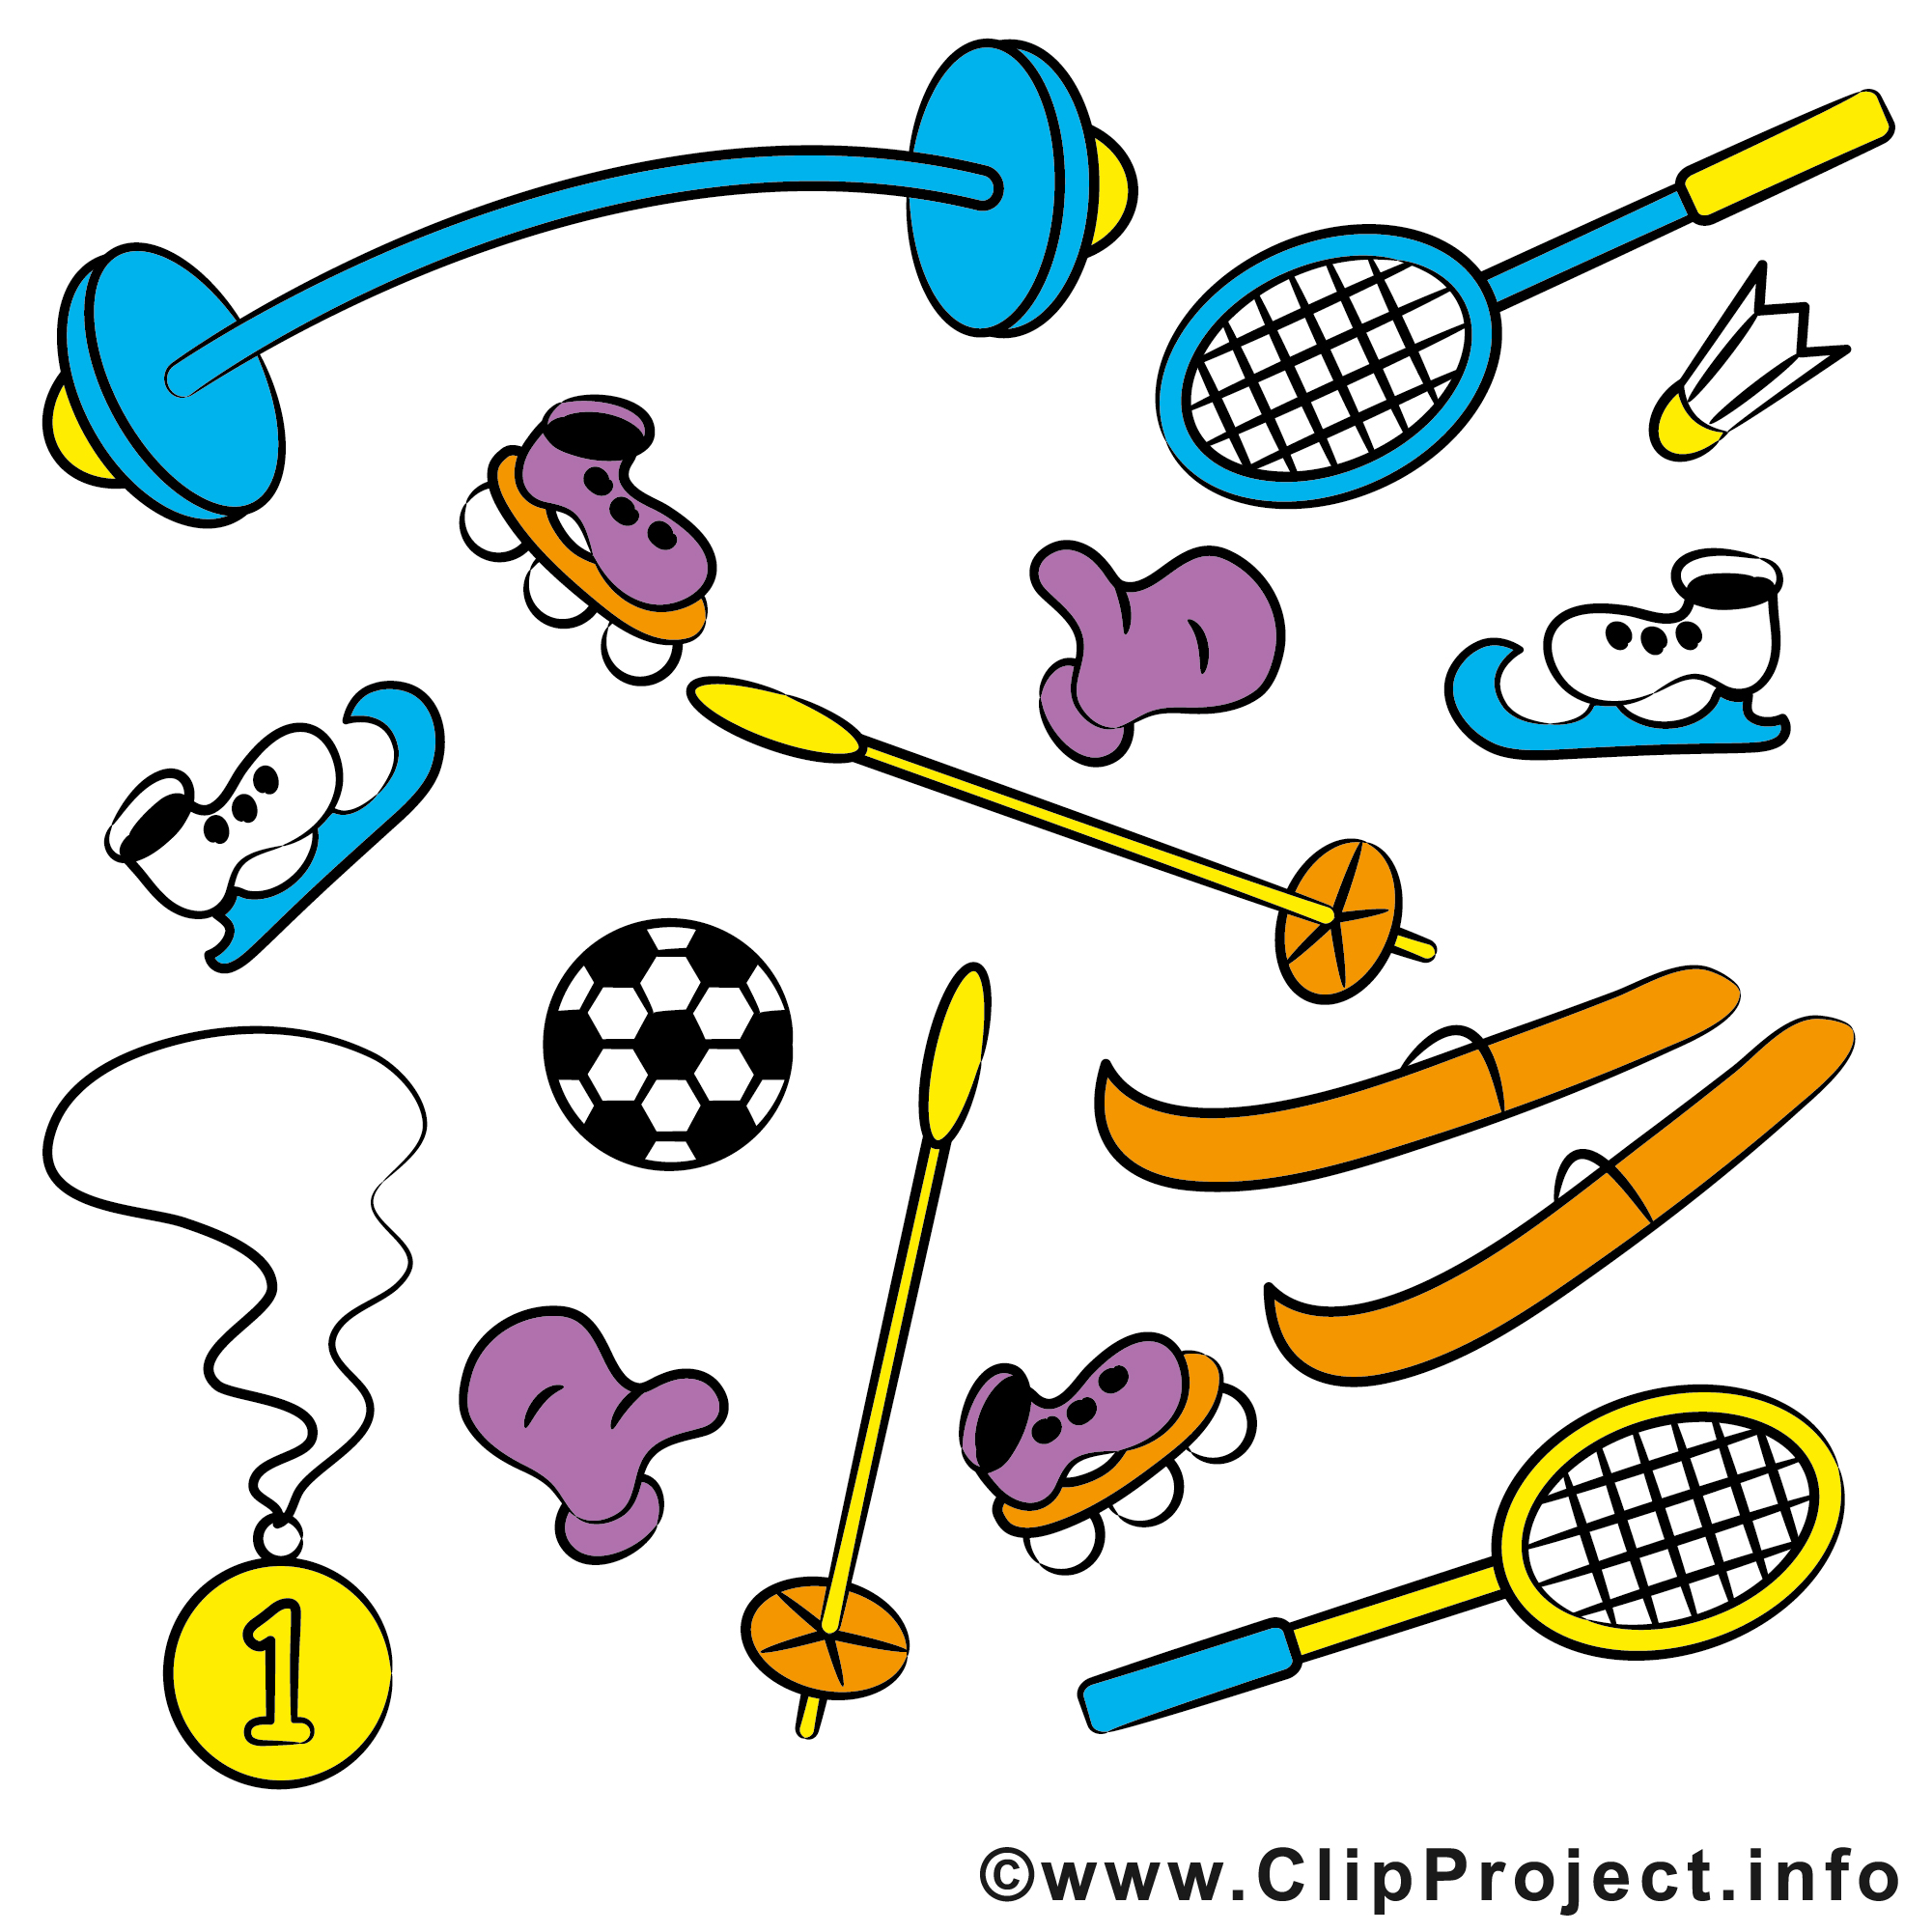 sports clipart clipart panda free clipart images rh clipartpanda com sports clip art free images free sports clipart images